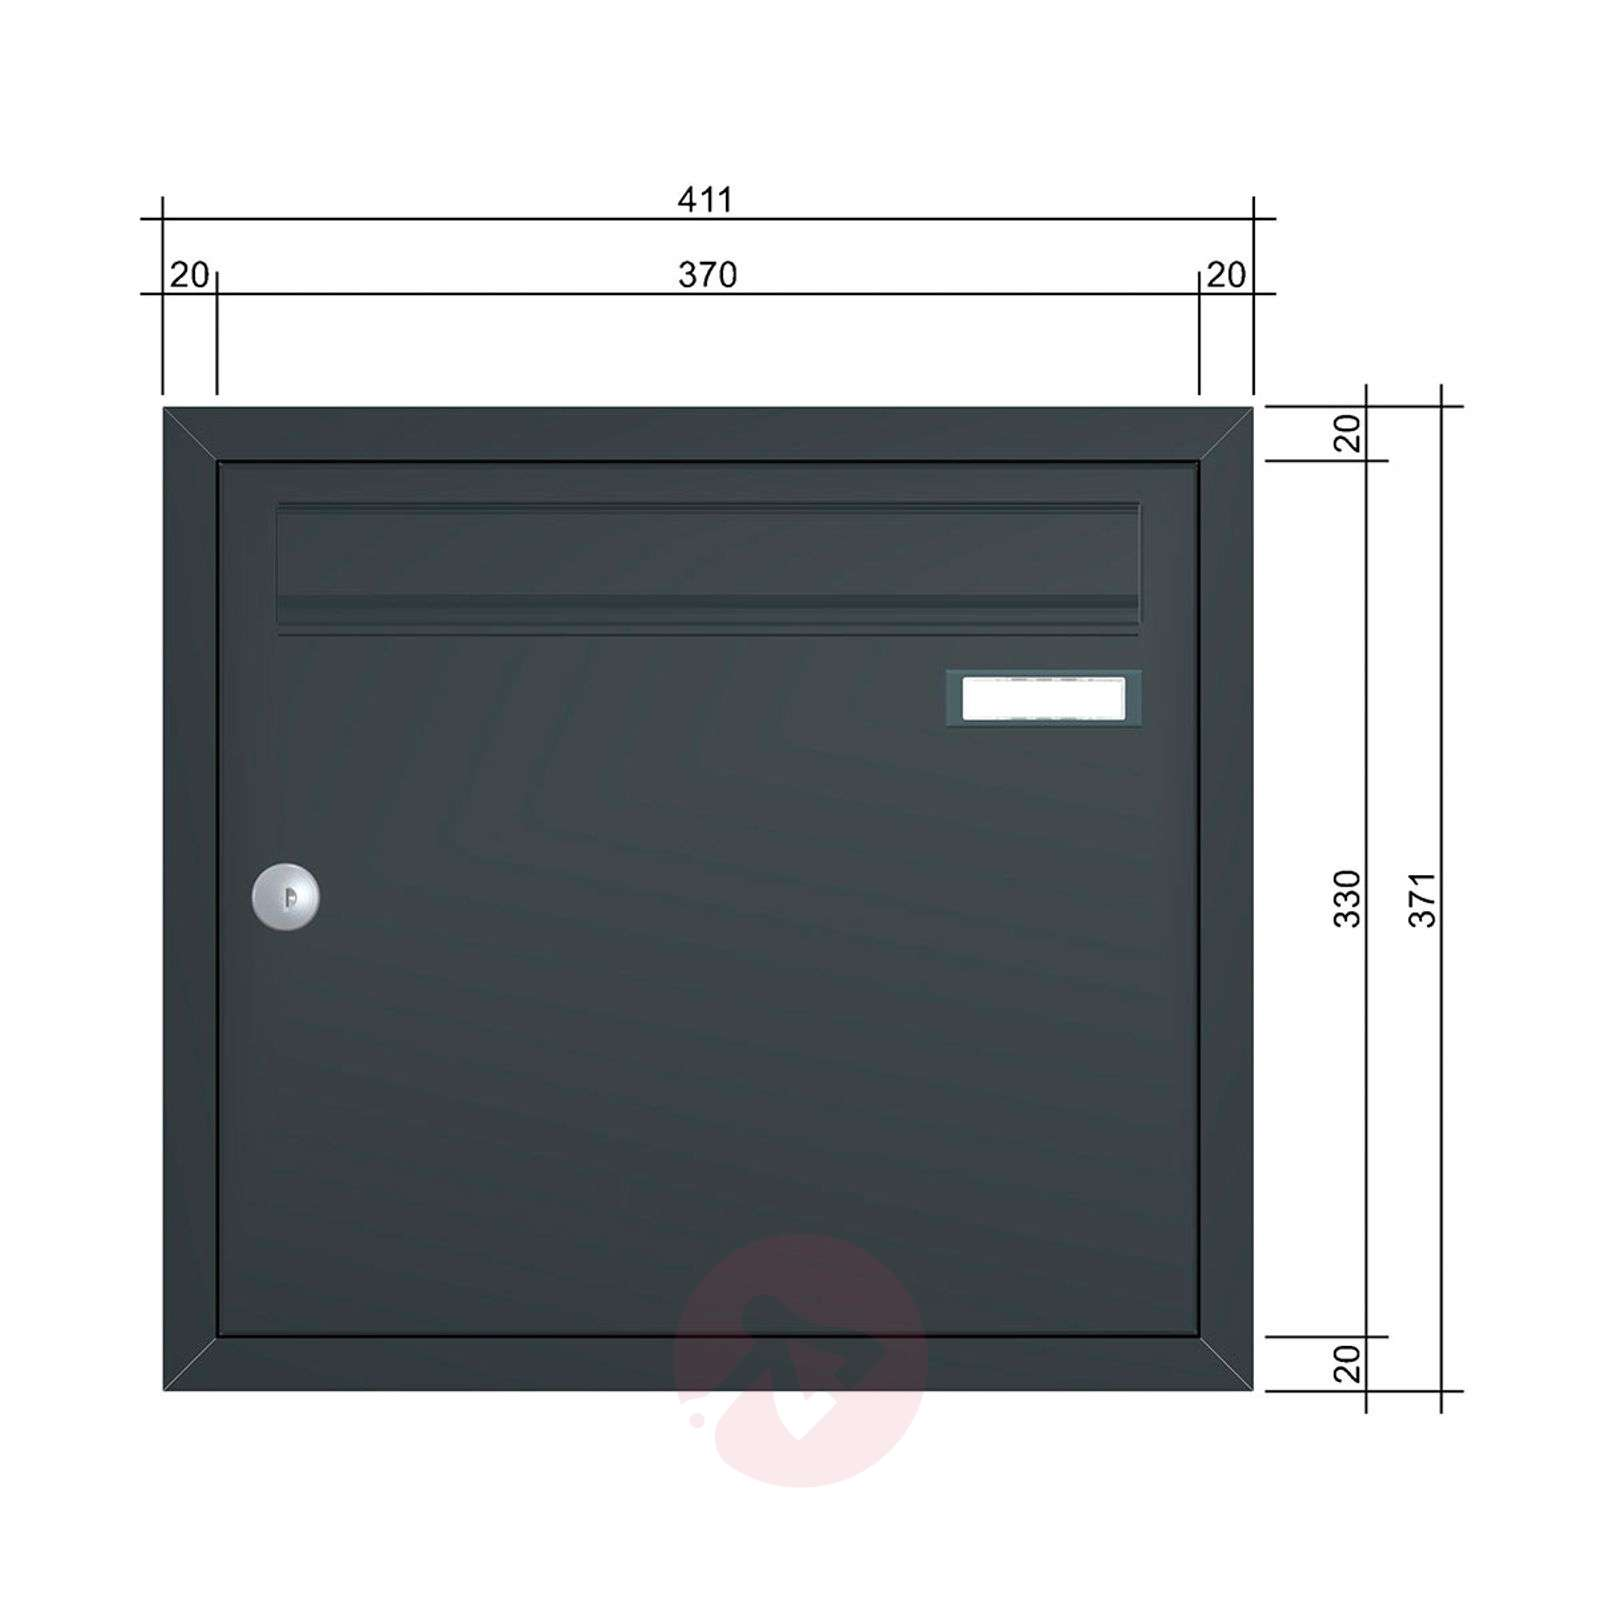 Anthracite grey letterbox Express Box Up 110-5540033-01